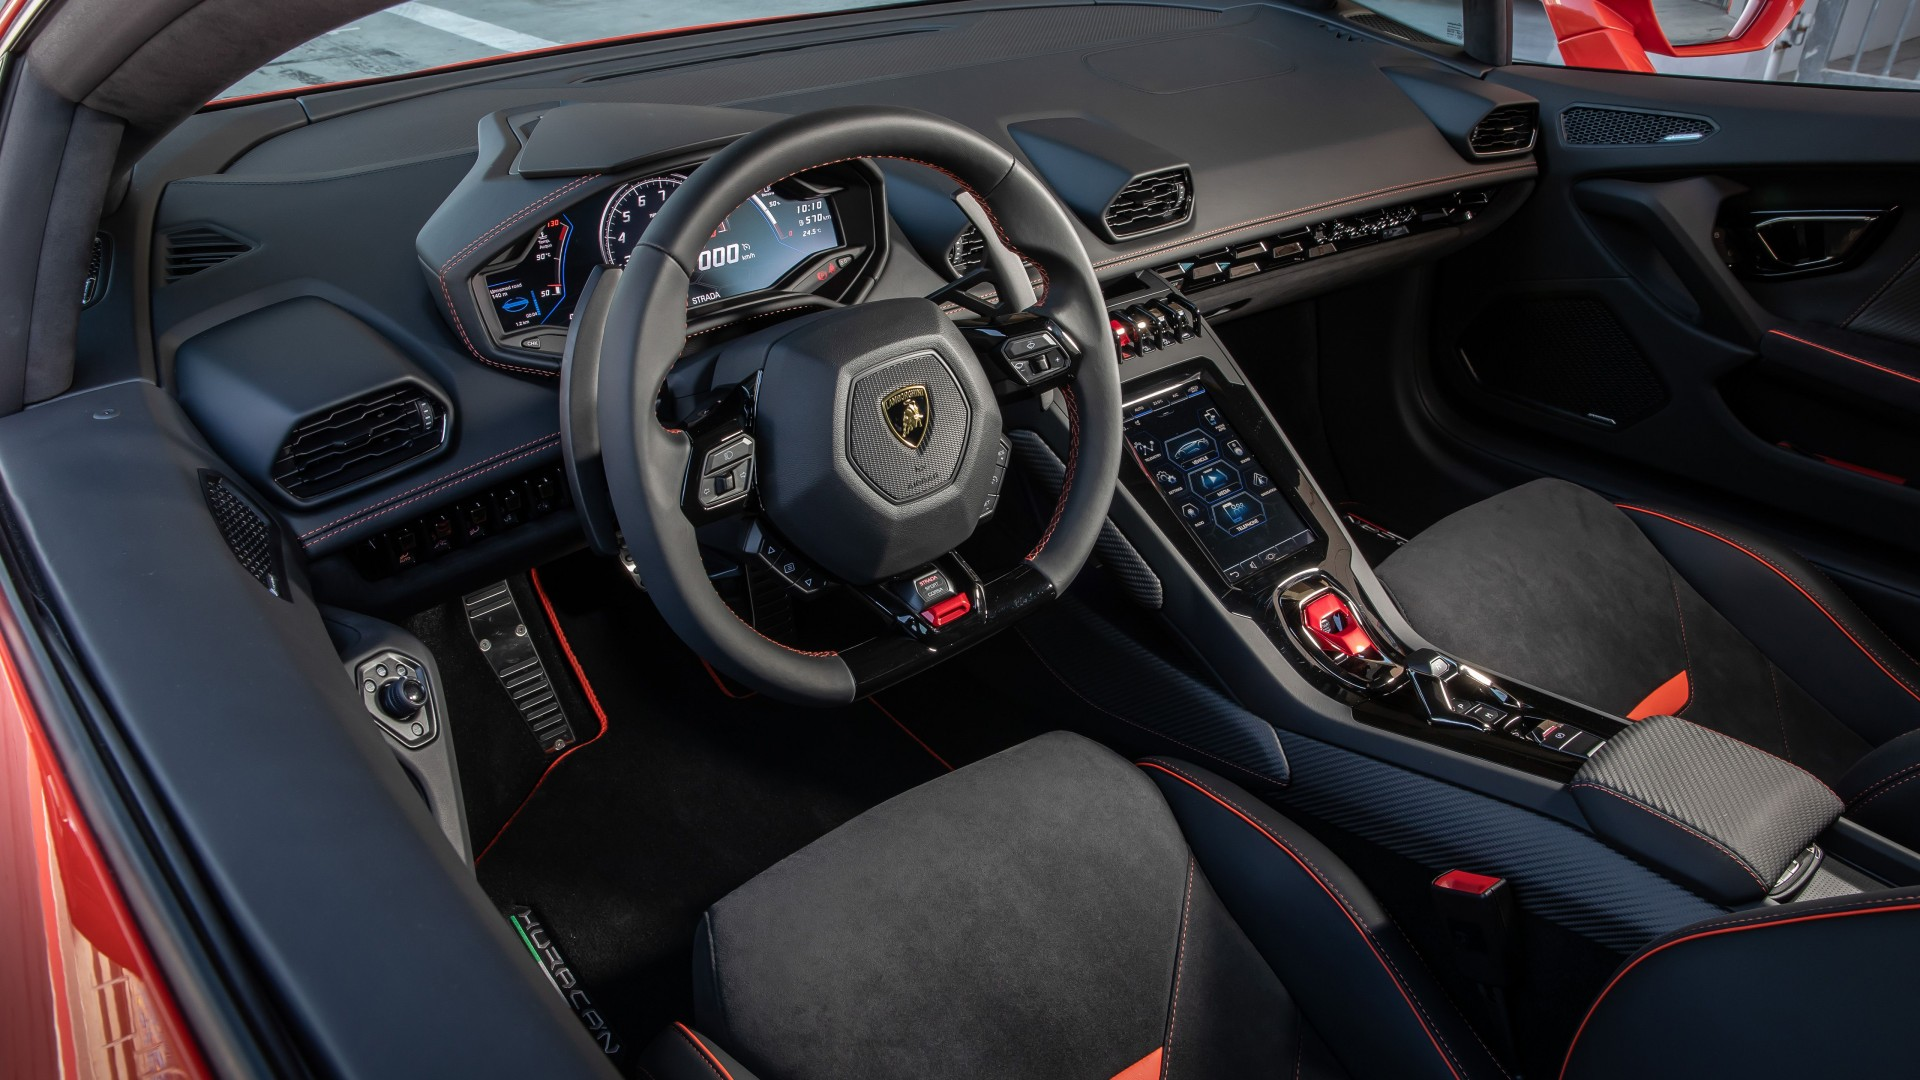 Lamborghini Huracan EVO Interior 5K 2019 Wallpaper | HD ...